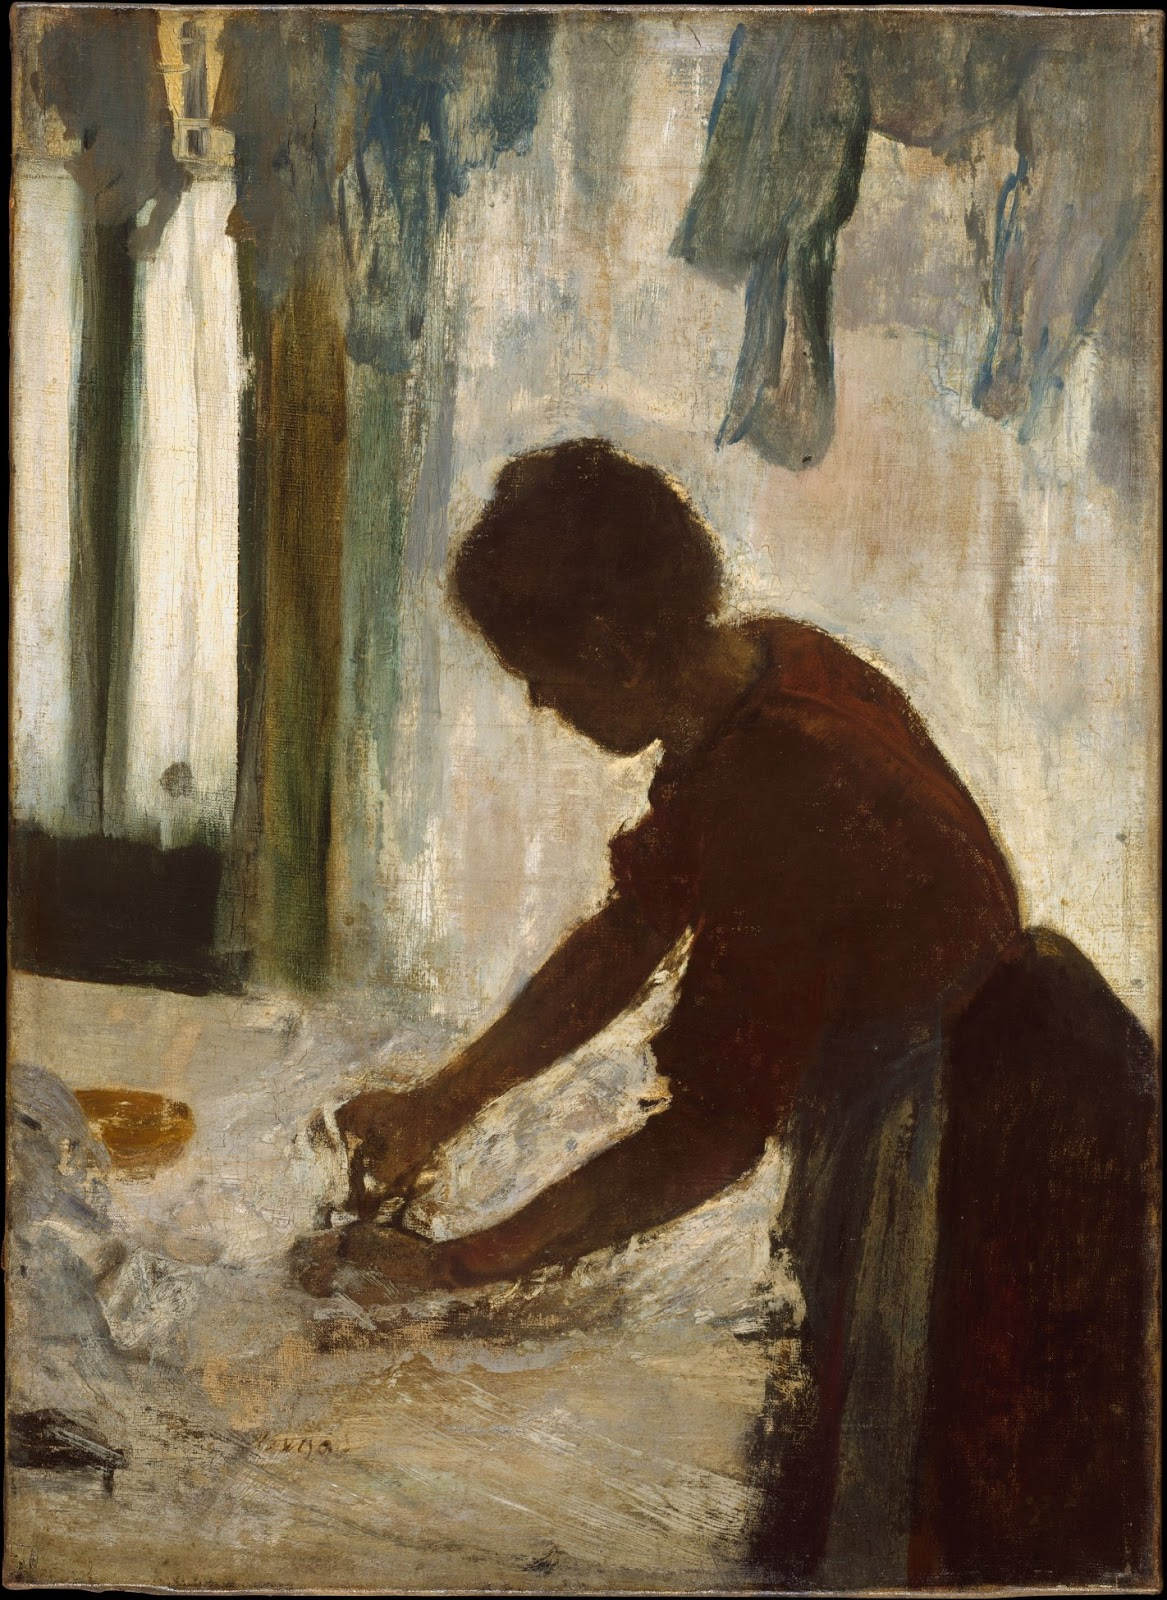 Spencer Alley: More Degas From The Havemeyer Collection